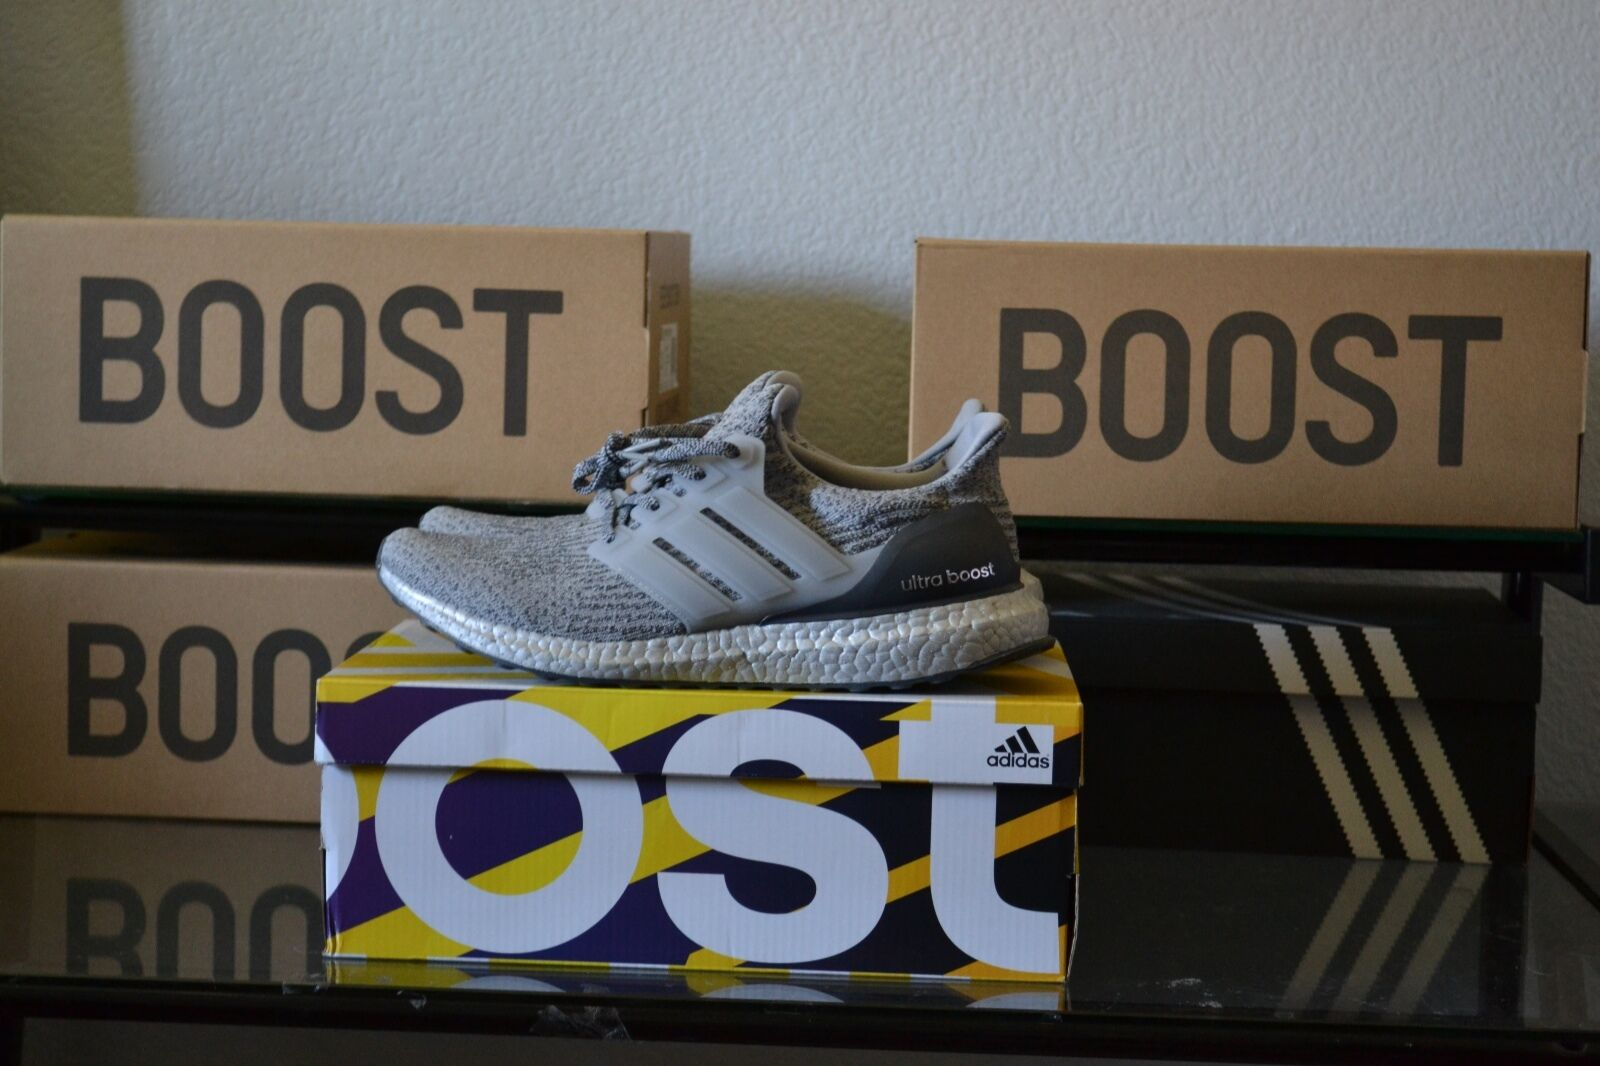 Adidas Ultra Boost LTD 3.0 Silver Pack Super Bowl DS Size 10.5